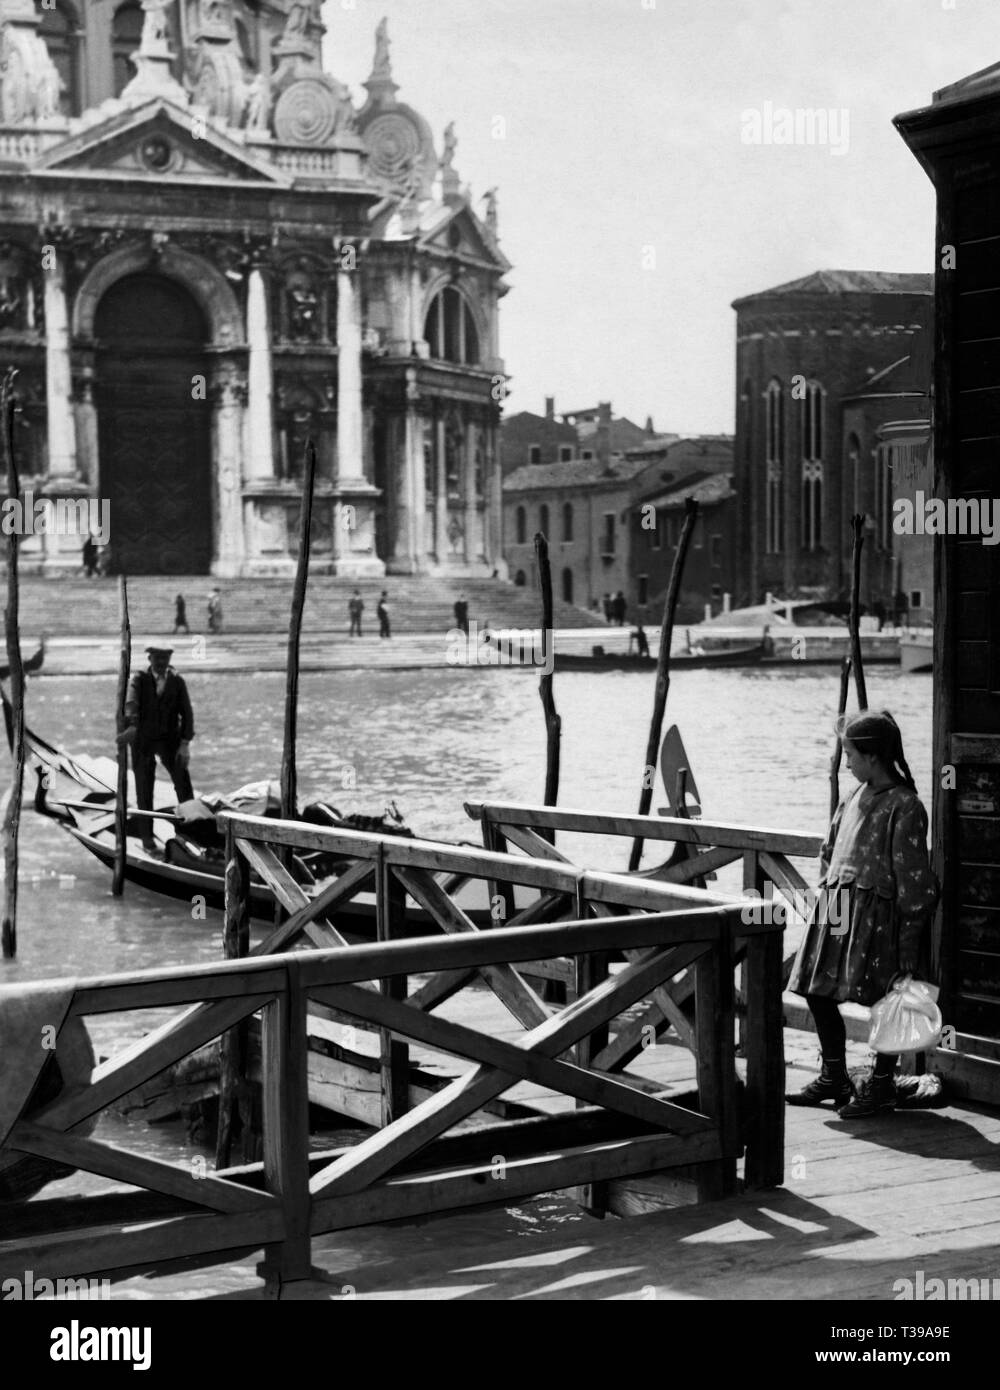 venice, ferry Trinity, a child brings breakfast to the gondolier, 1910-20 - Stock Image